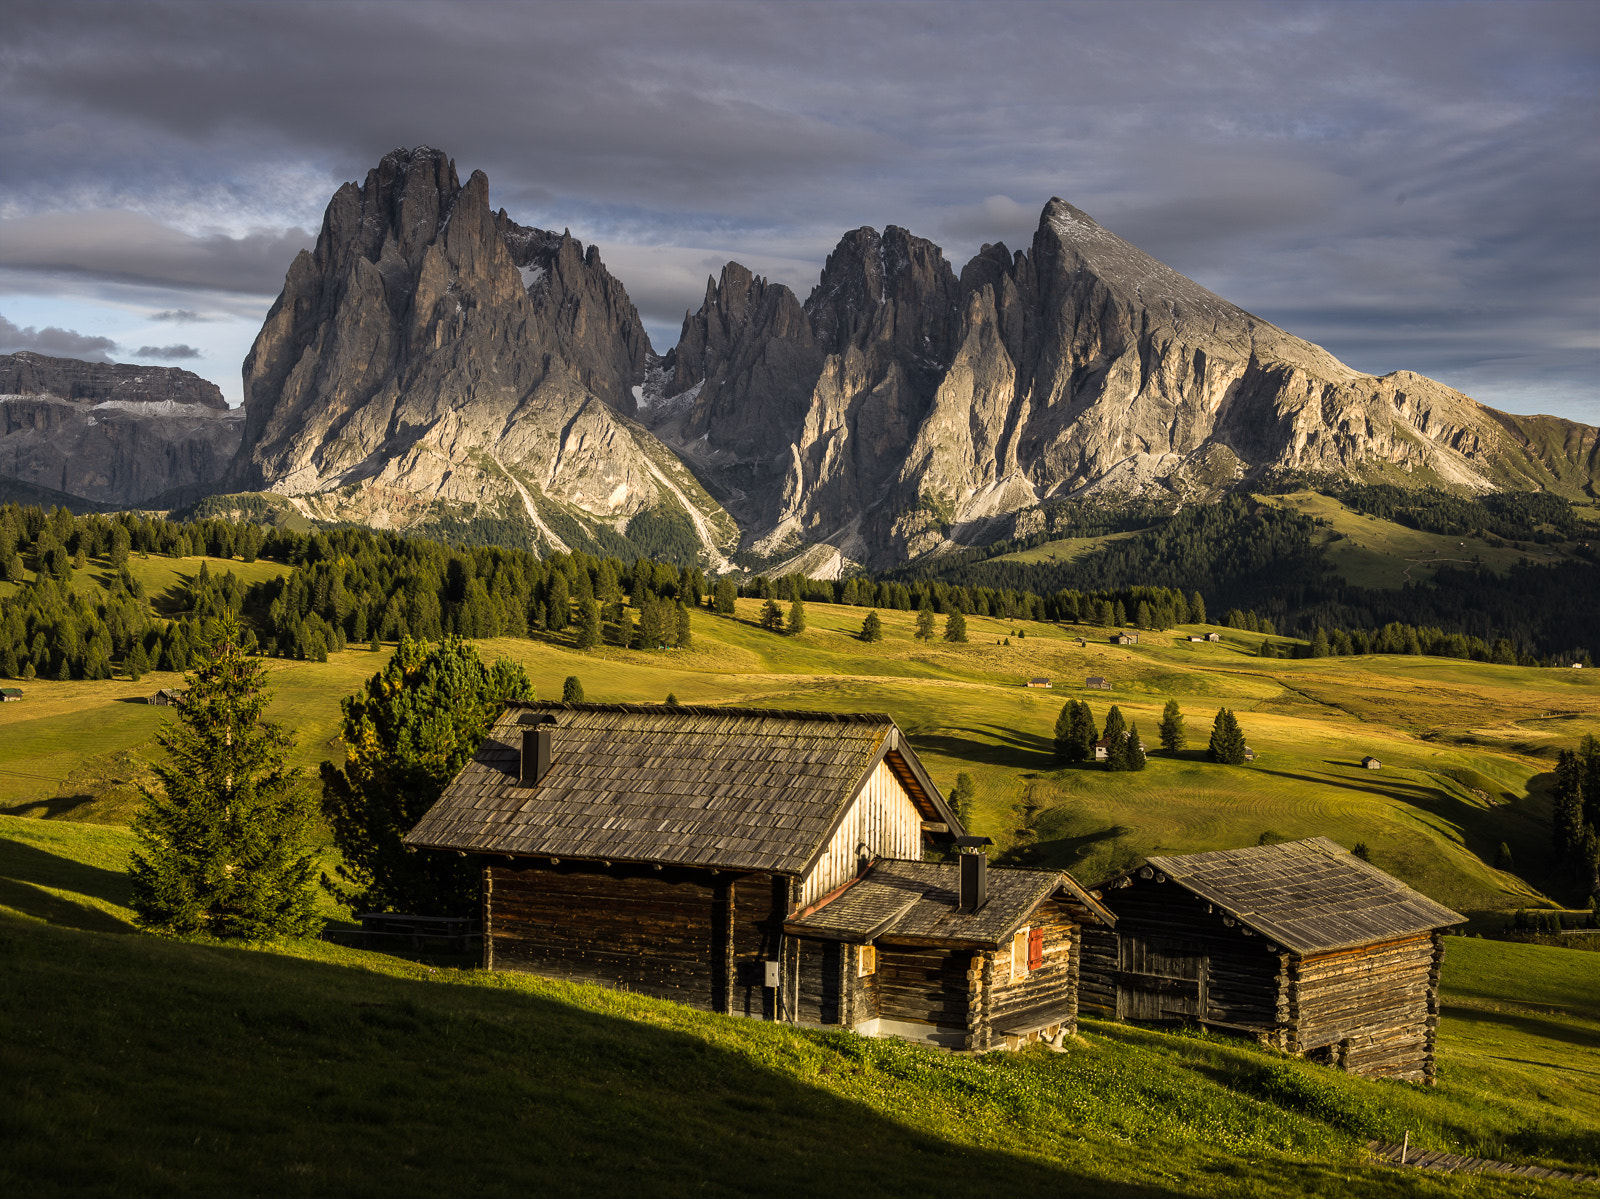 Photograph Alpe di Siusi in late afternoon light by Hans Kruse on 500px